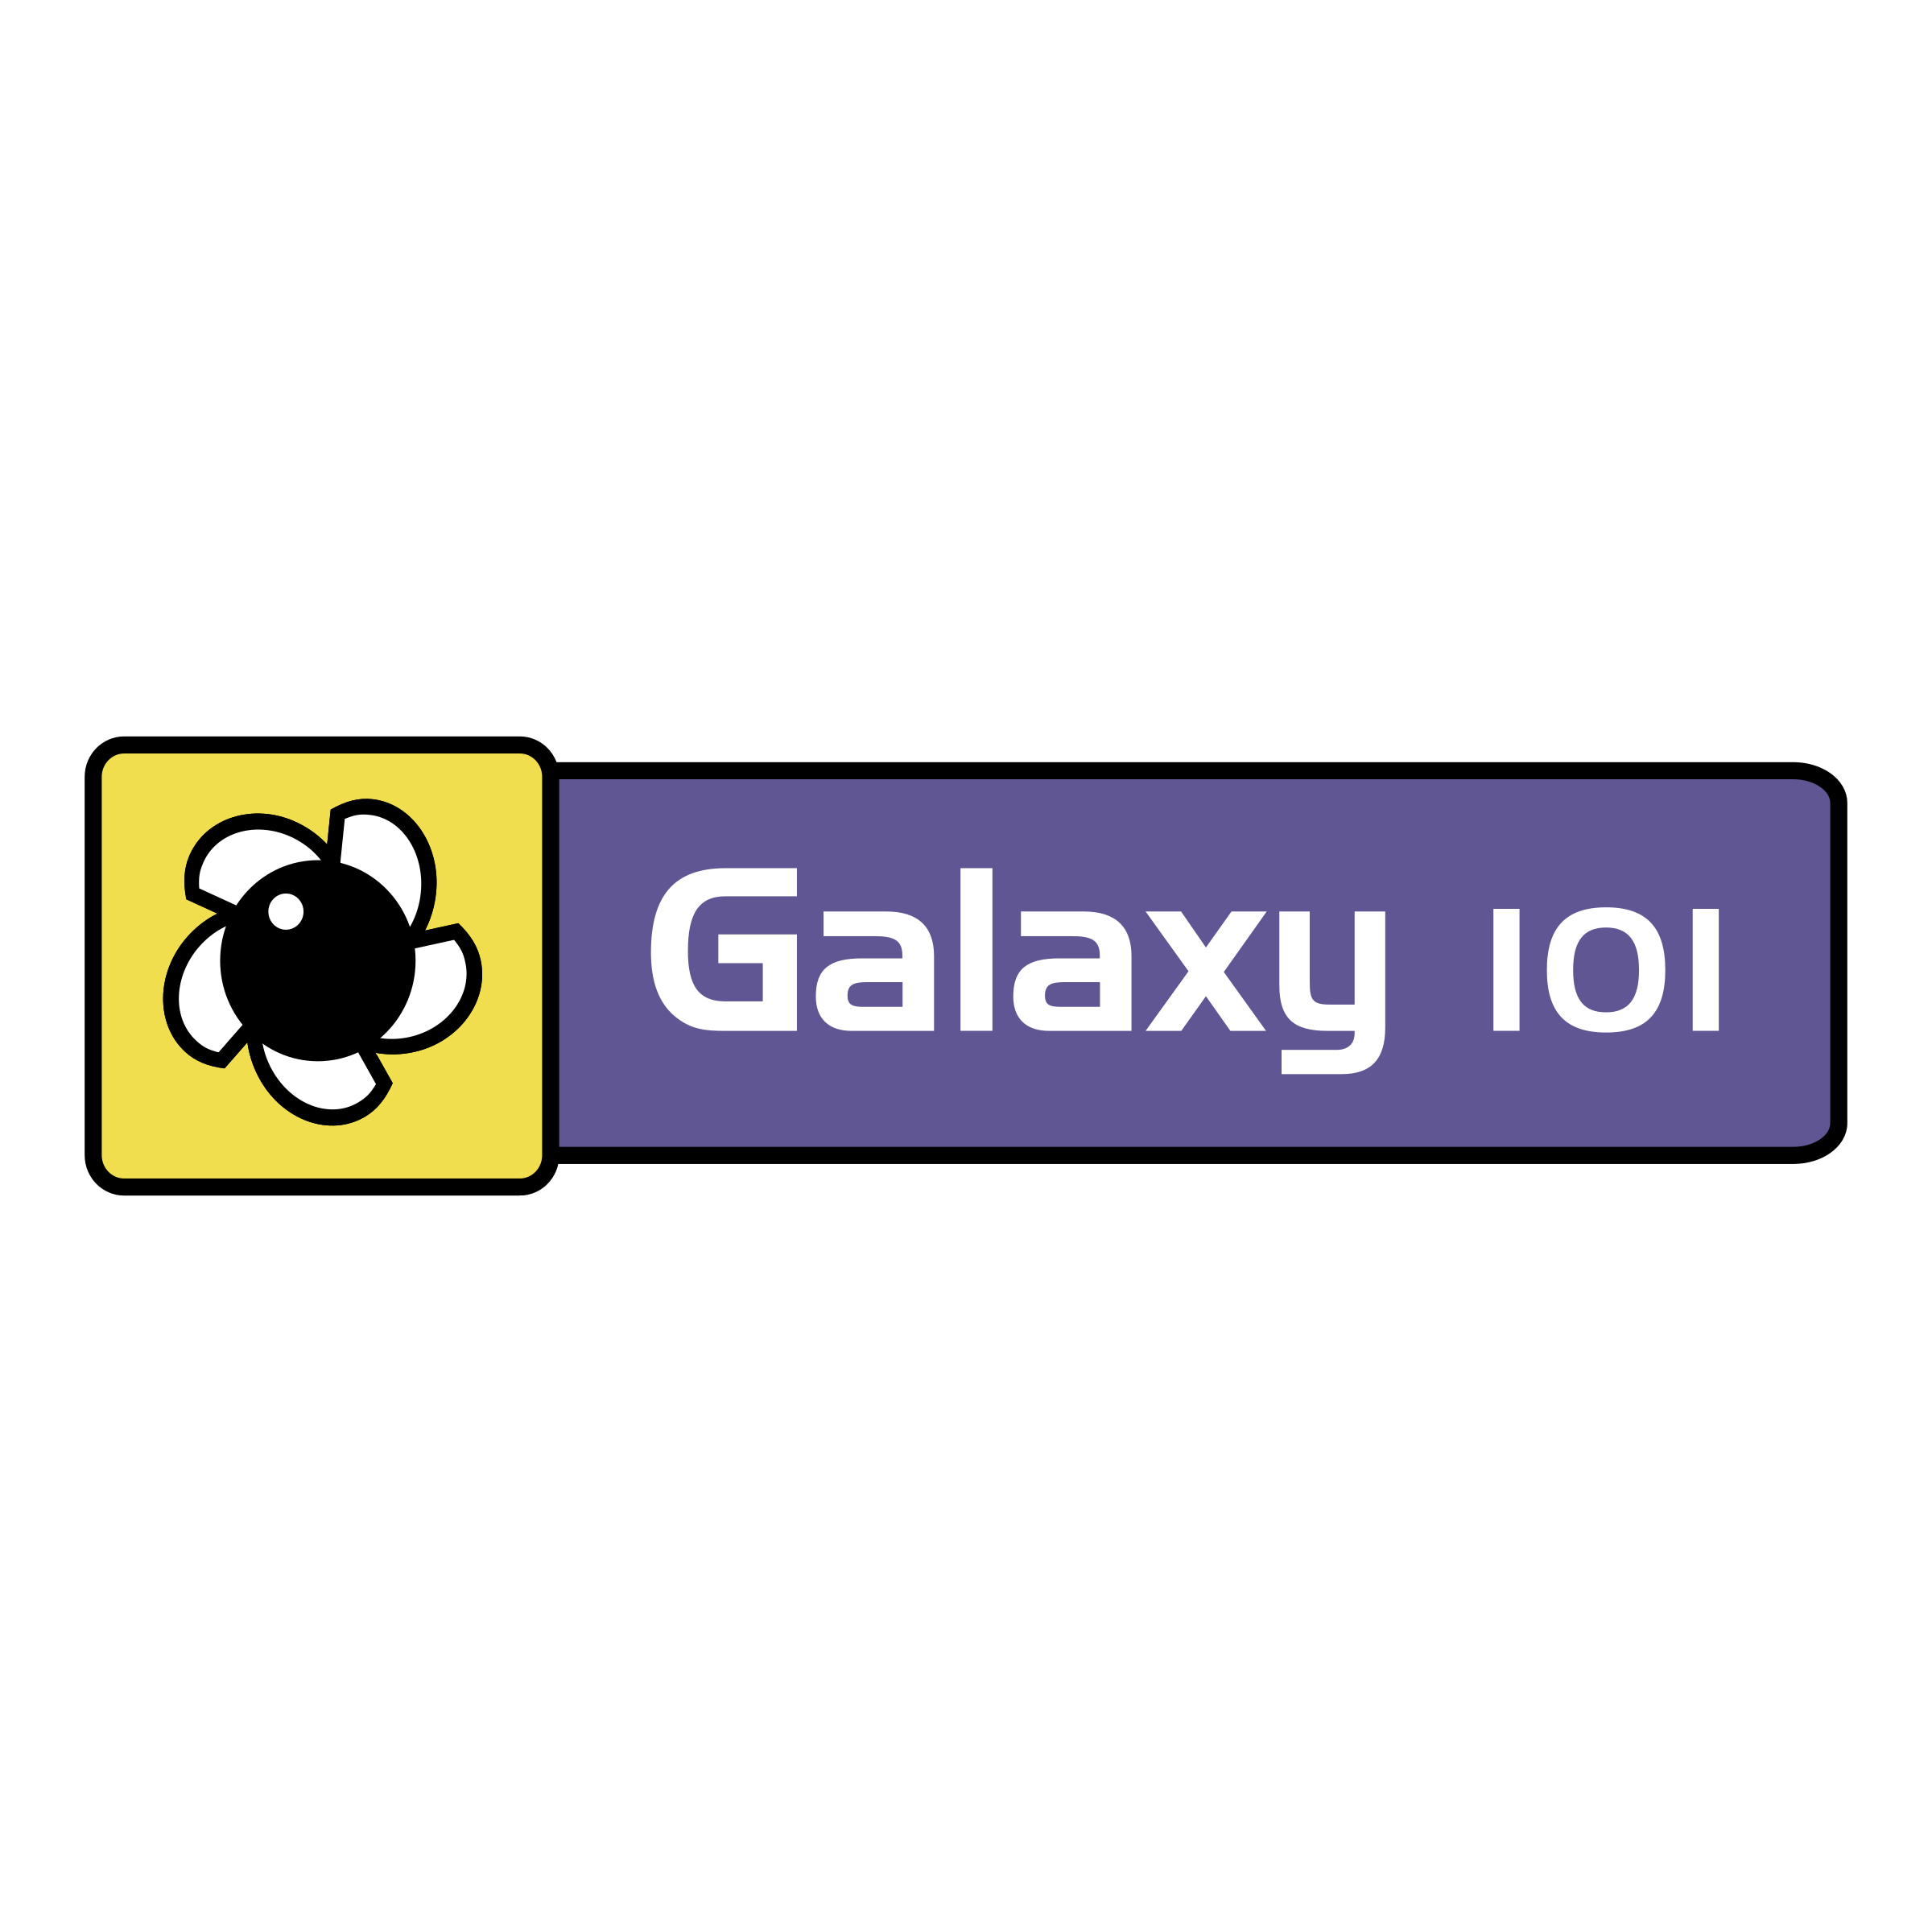 galaxy 101 logo png transparent svg vector freebie supply rh freebiesupply com galaxy logo maker galaxy logo design